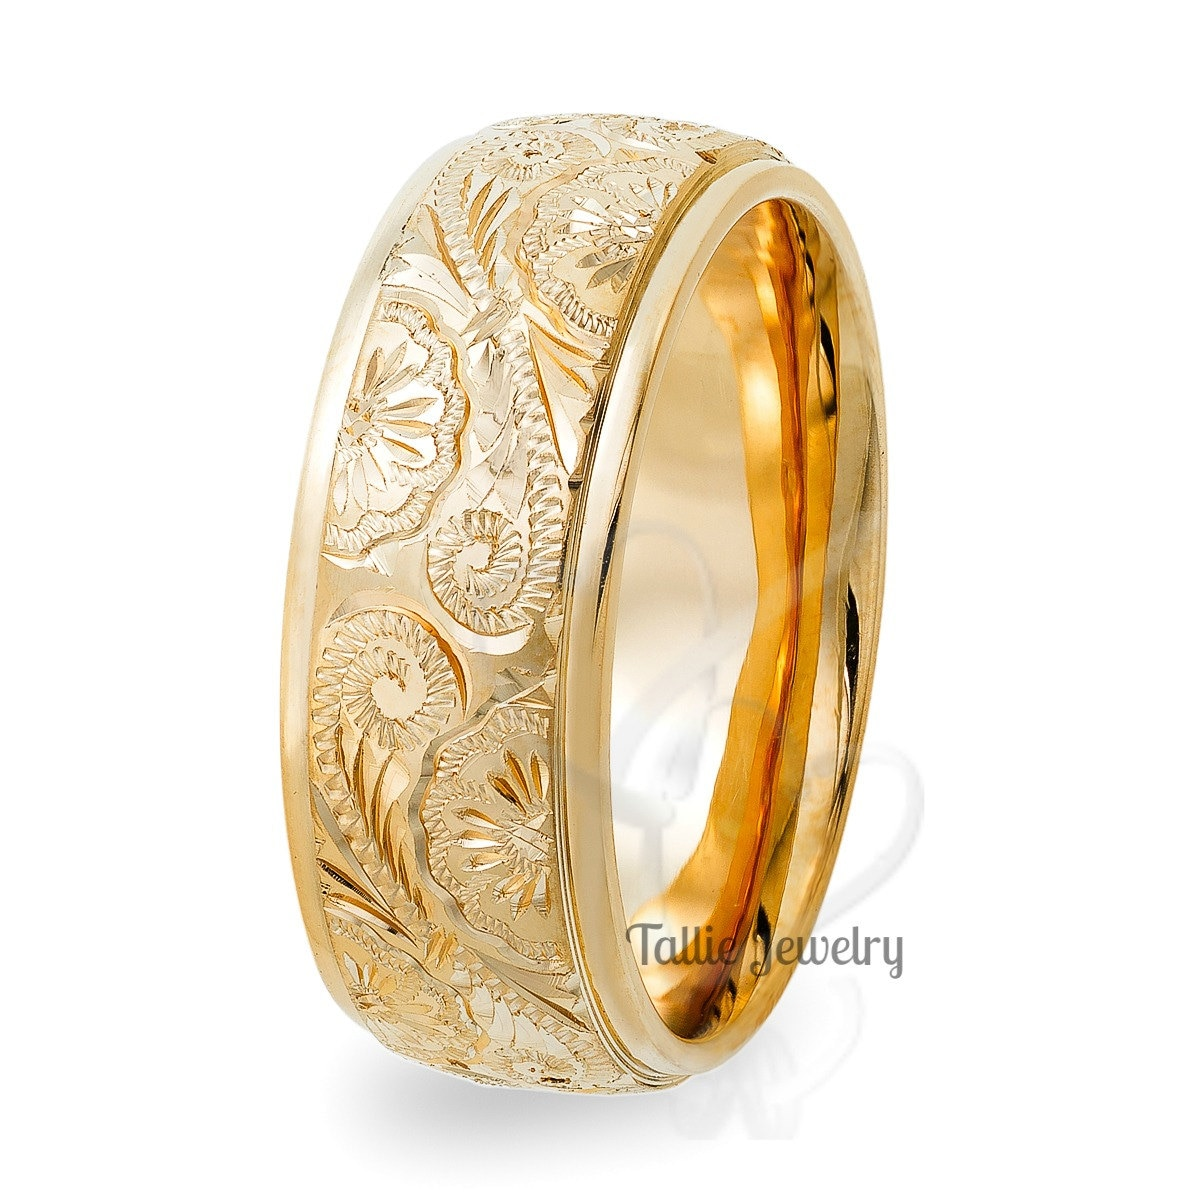 graphics concept jewelry ring ideas jewish best wedding unique customize customized rings of